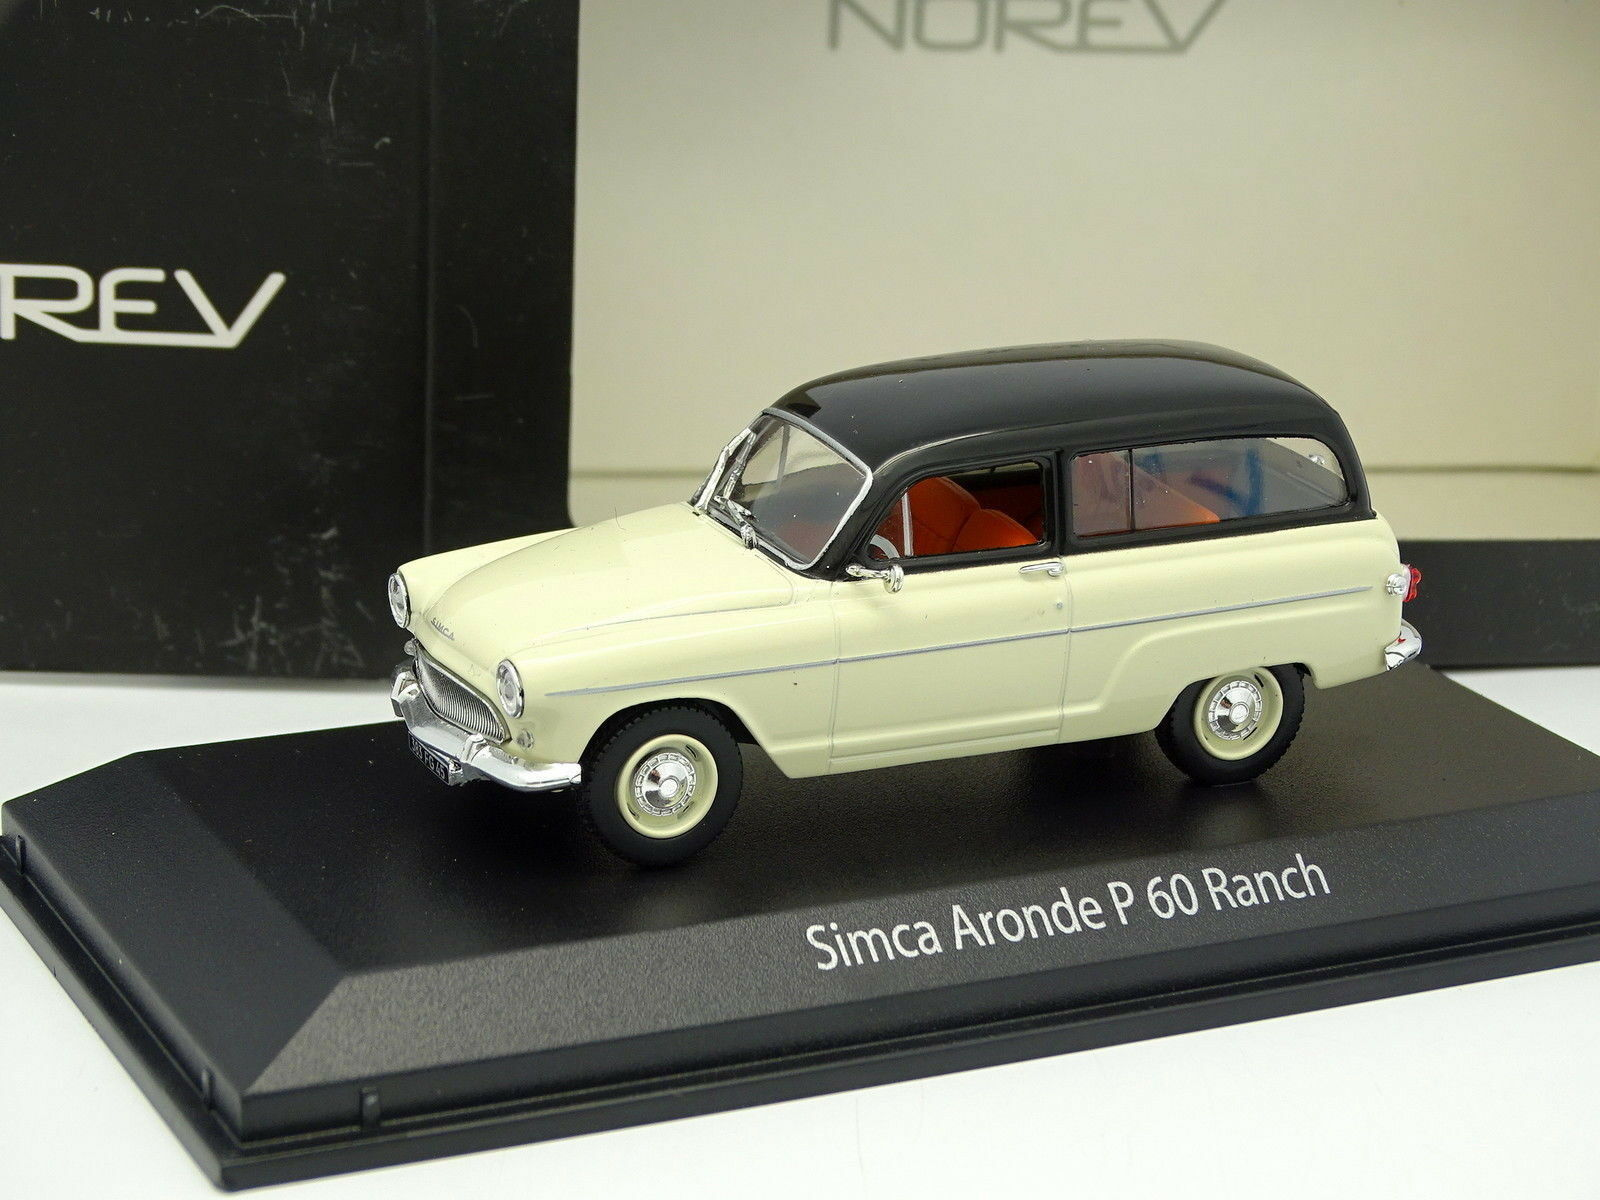 Norev 1 43 - Simca P60 Ranch white und black